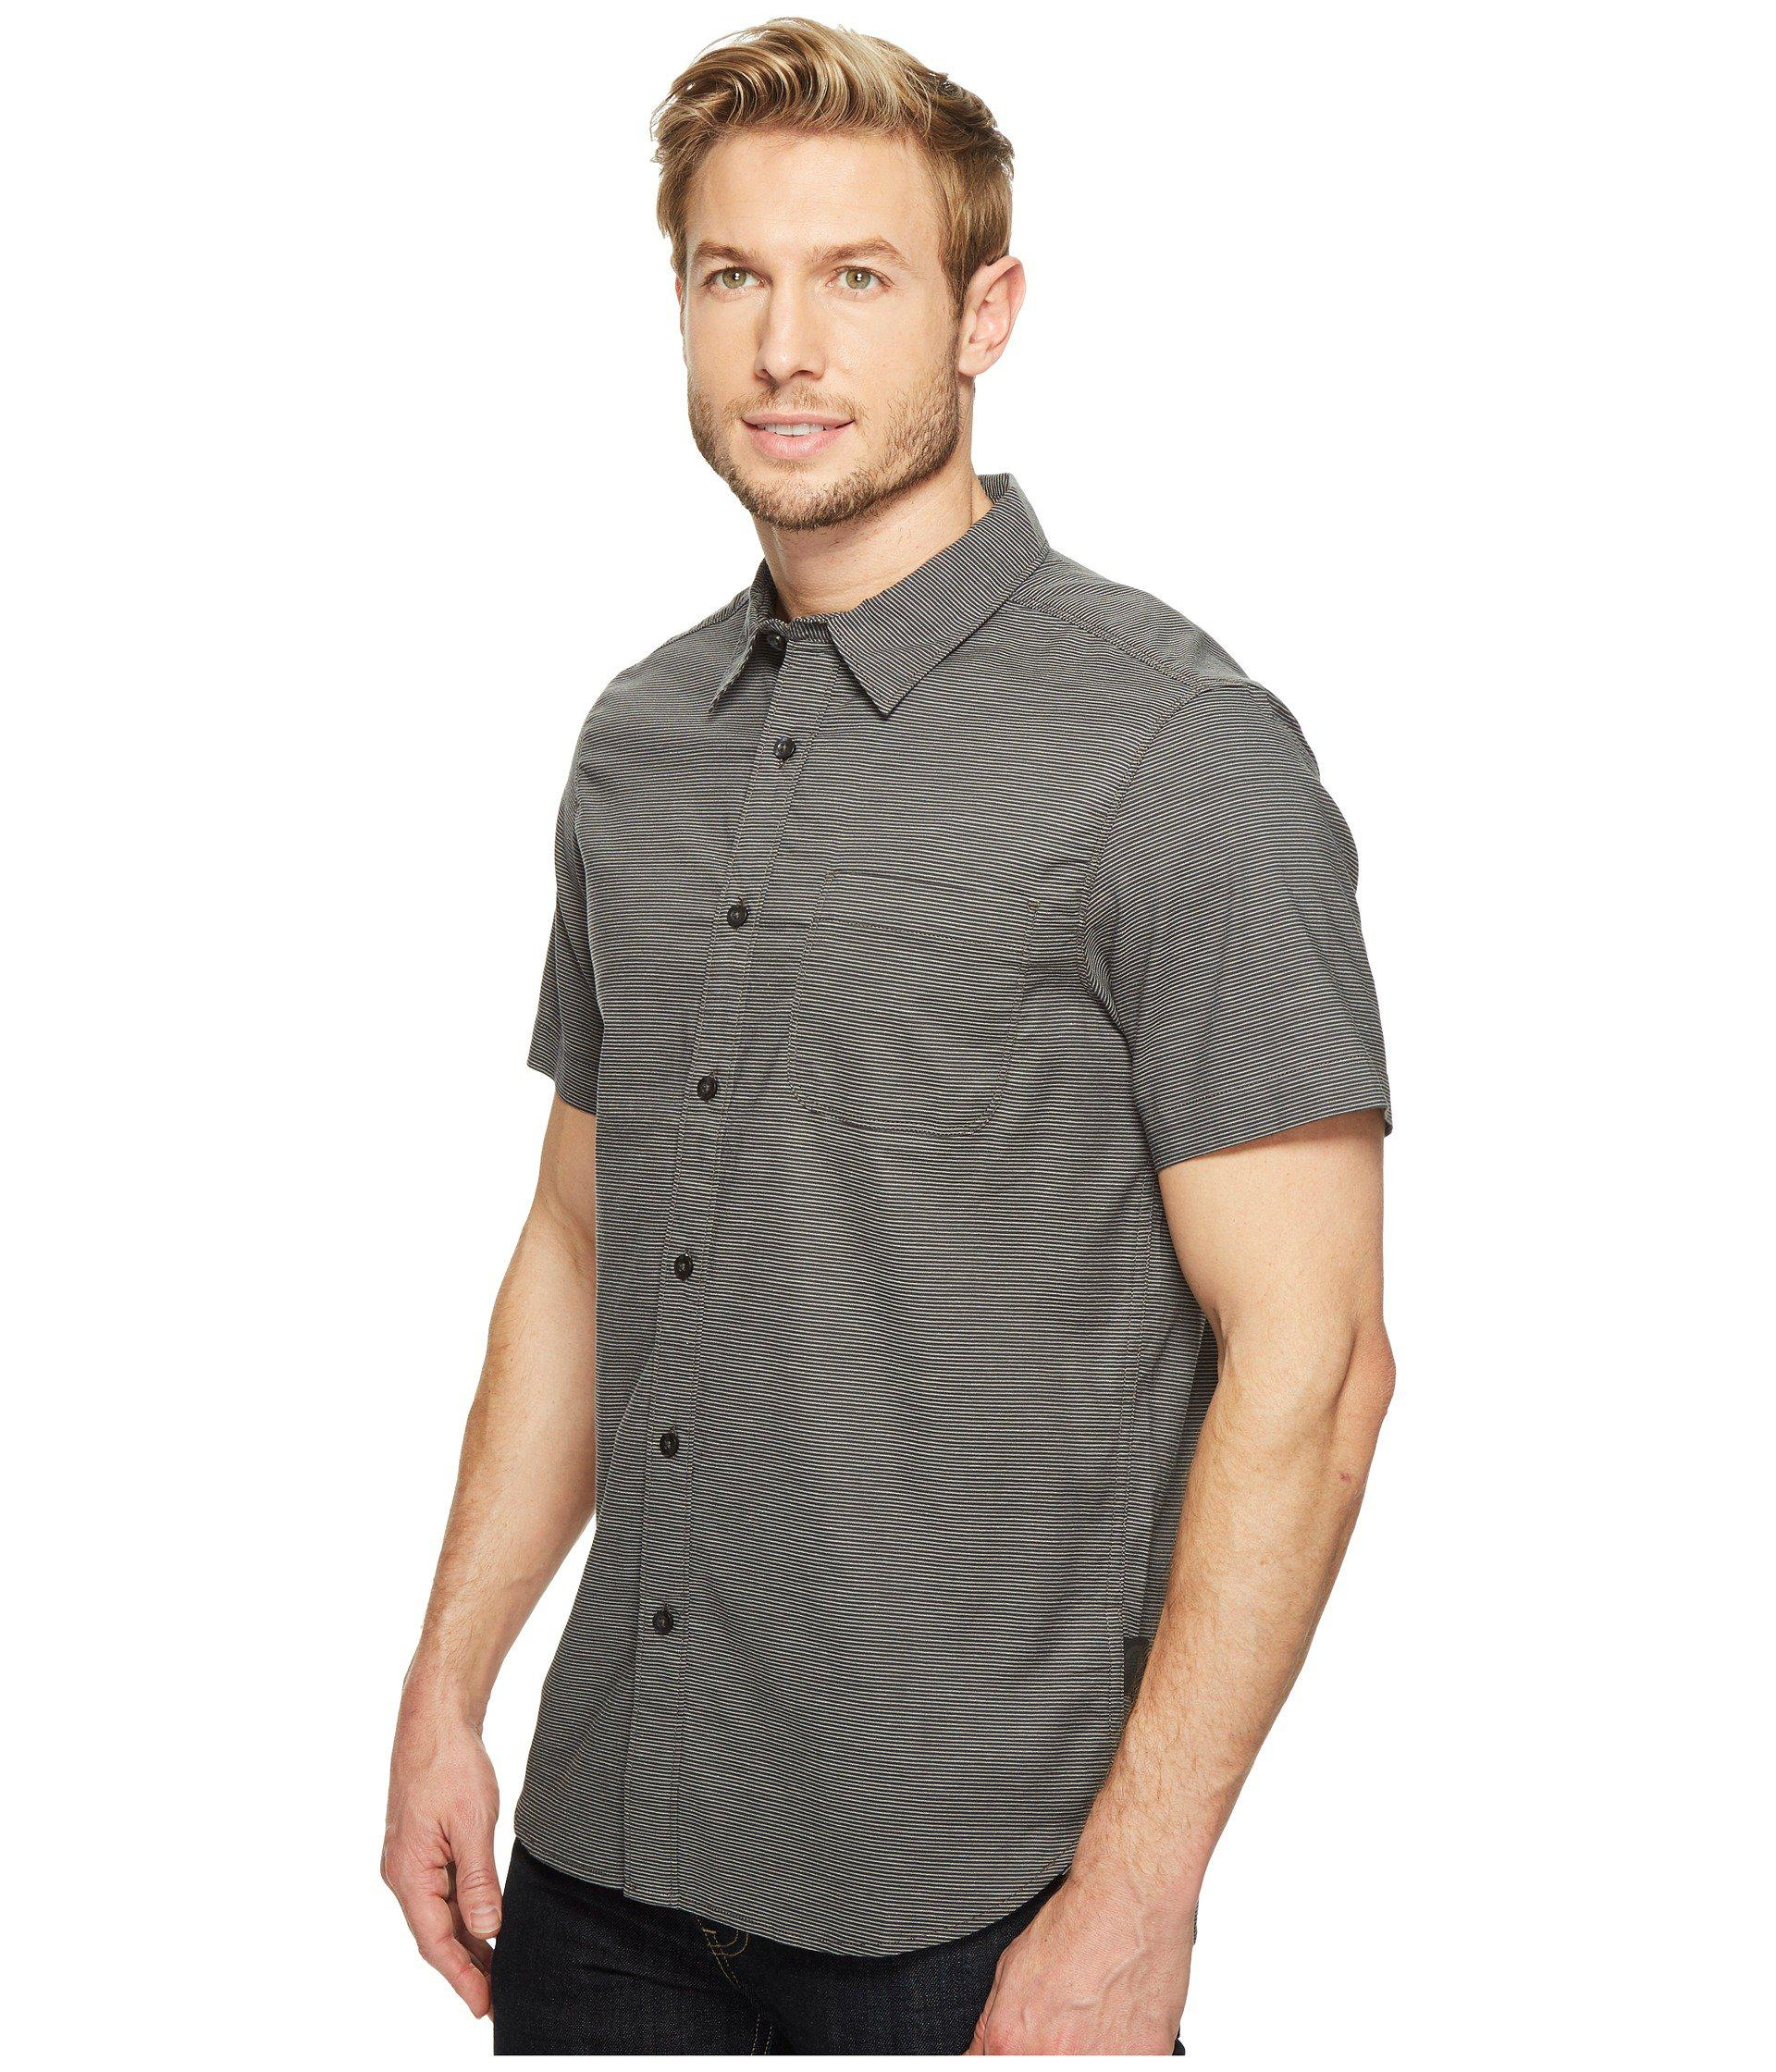 0b5b1136f Lyst - The North Face Short Sleeve On Sight Shirt in Gray for Men ...